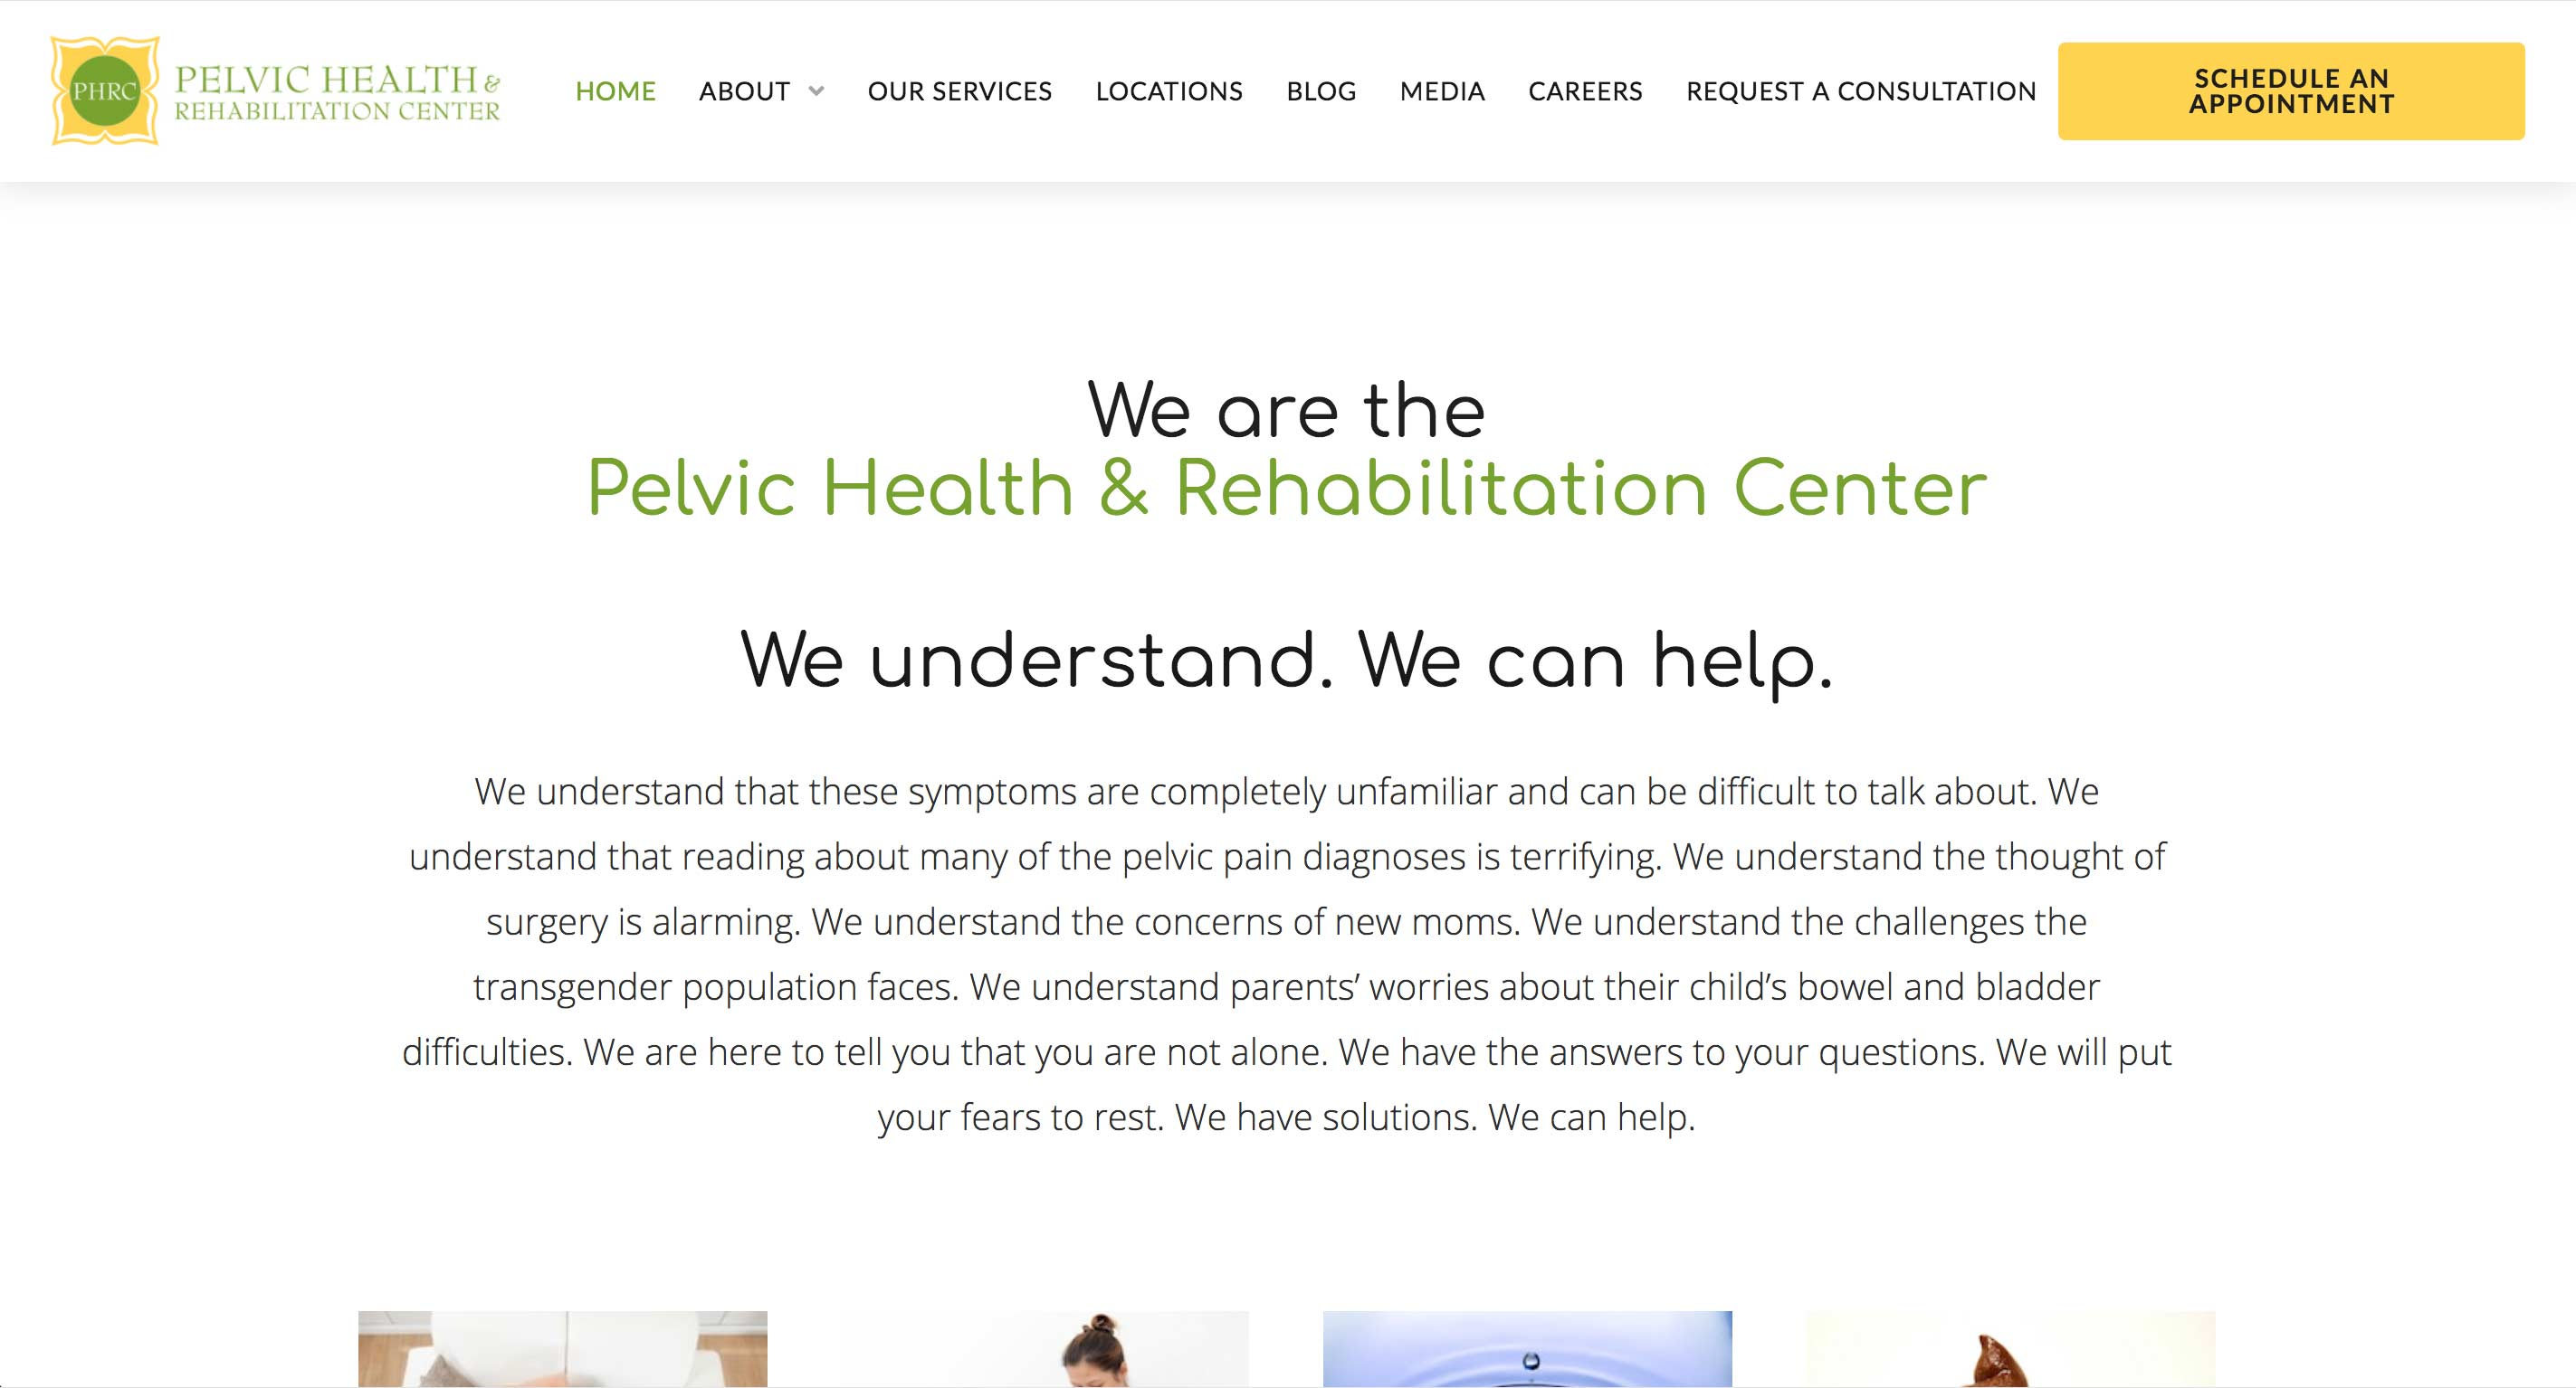 Pelvic Health and Rehabilitation Center Blog - Home Page